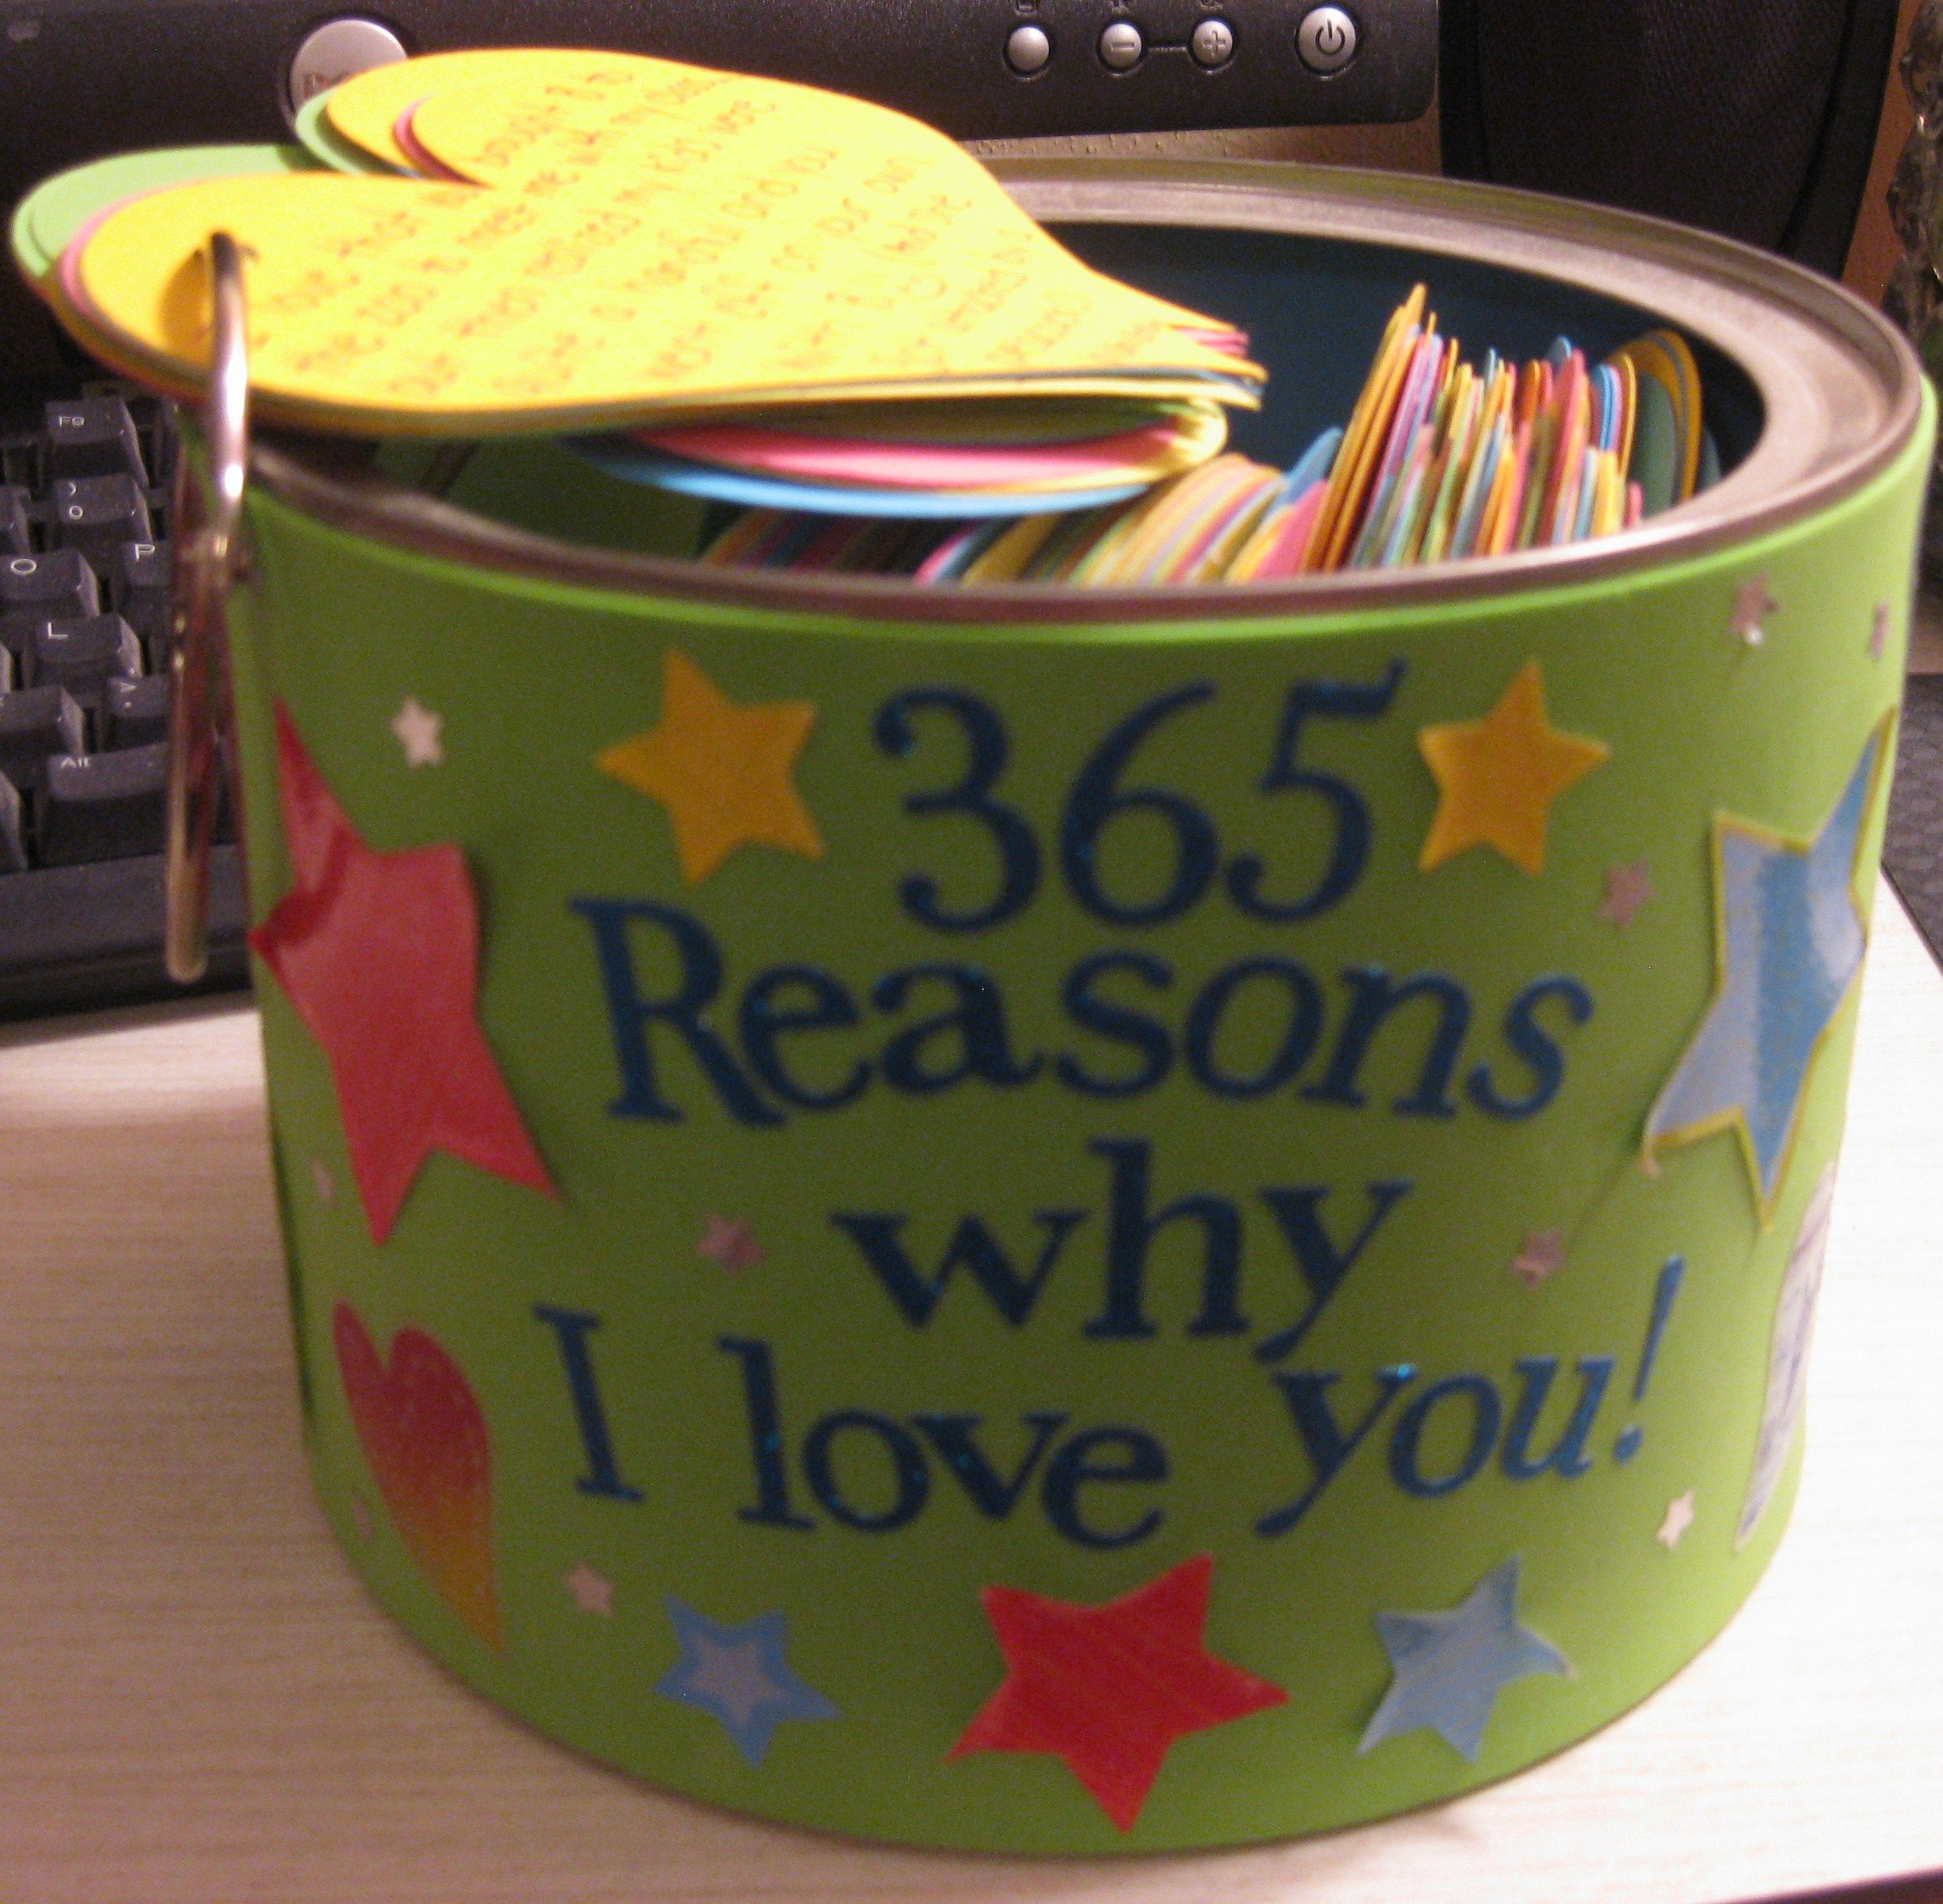 365 Reasons Why I Love You An Amazing Gift To Give To The